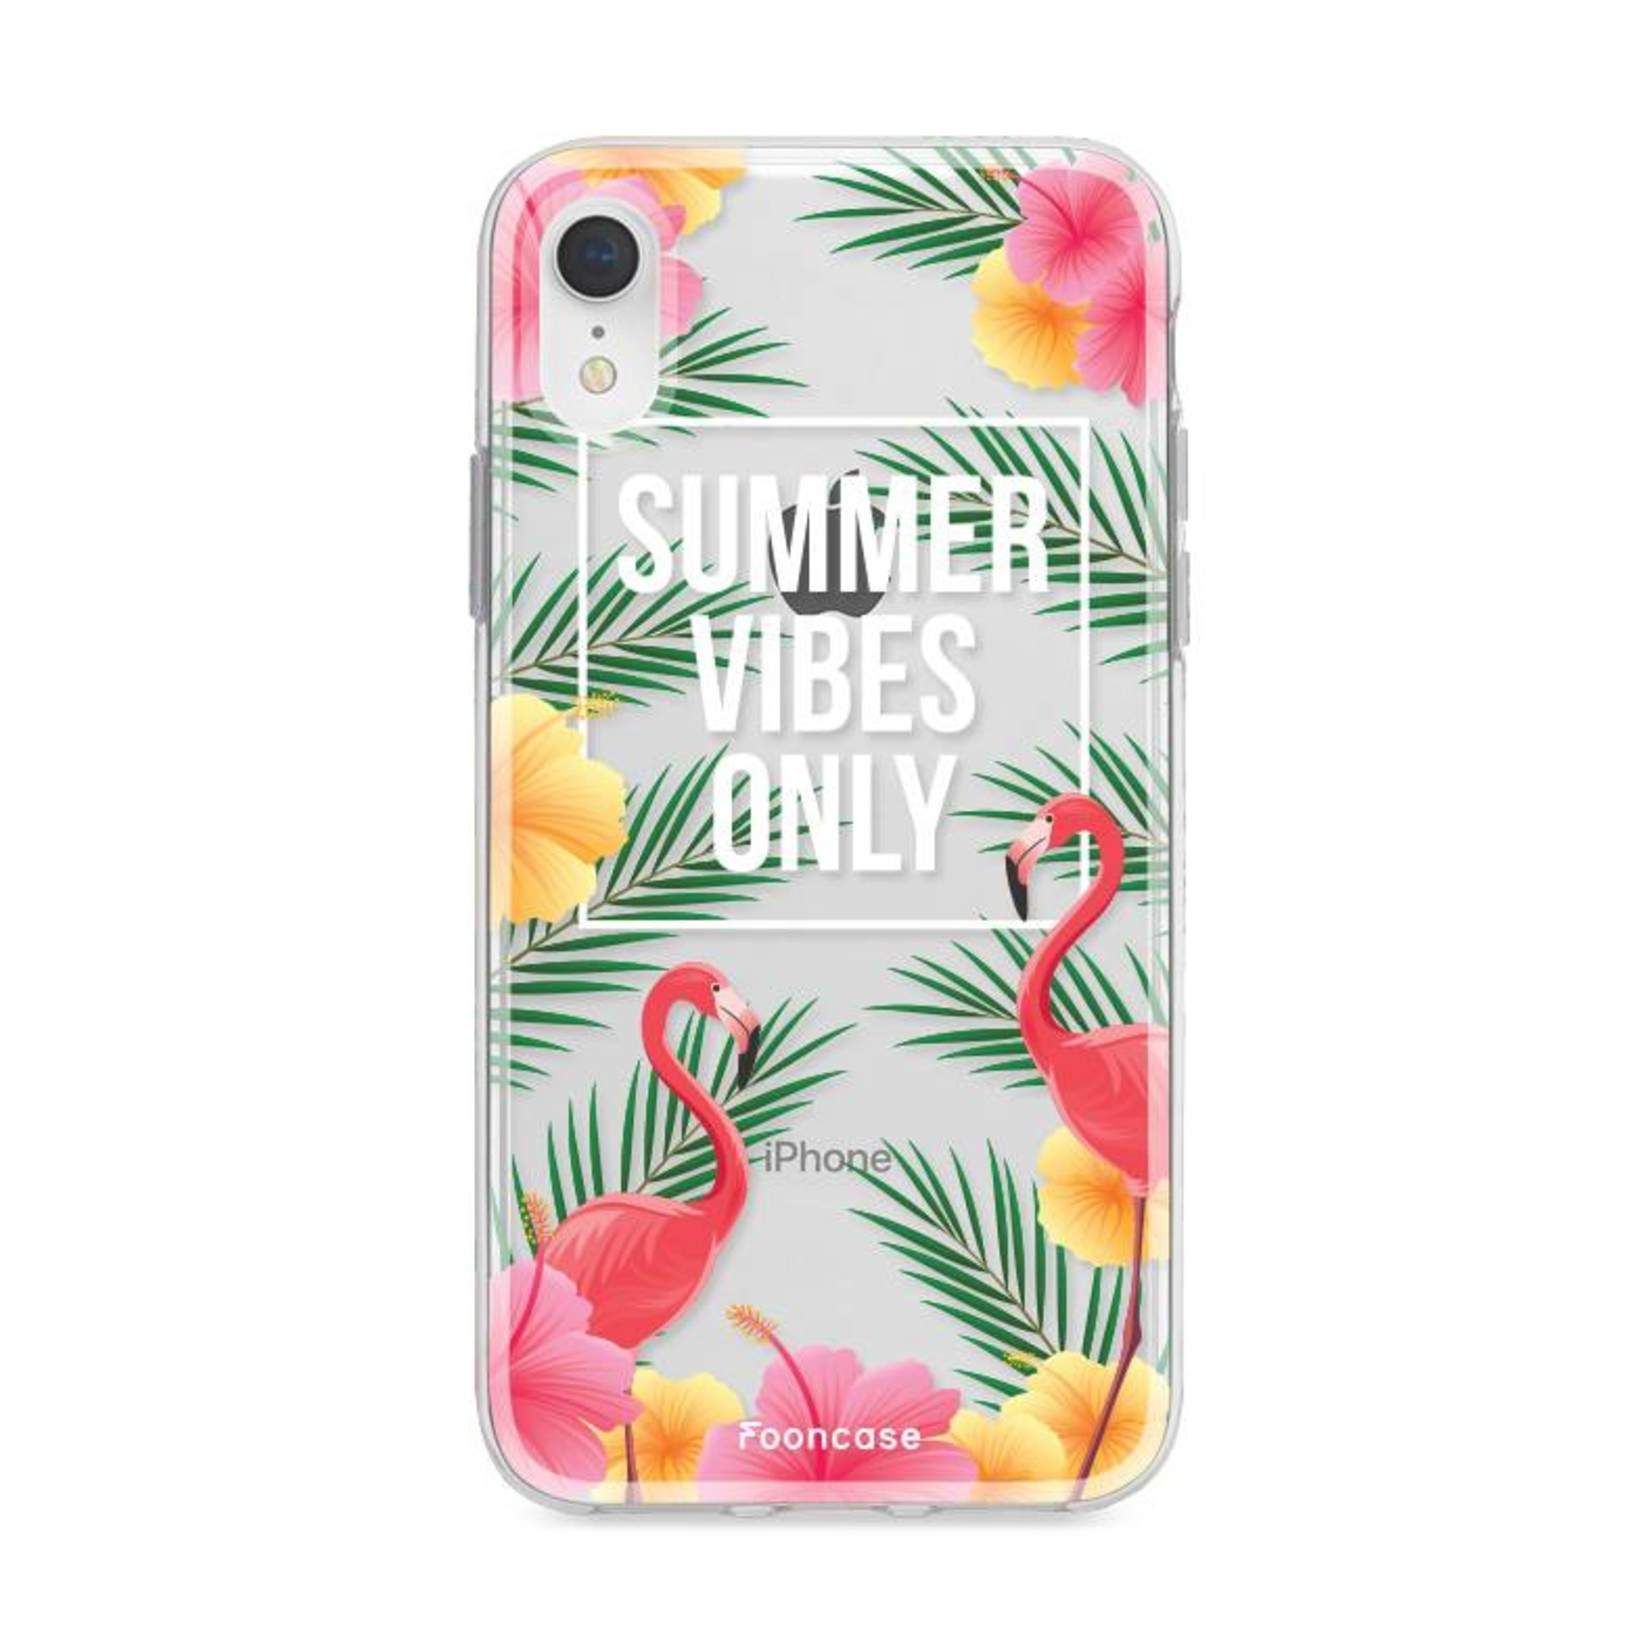 FOONCASE iPhone XR hoesje TPU Soft Case - Back Cover - Summer Vibes Only